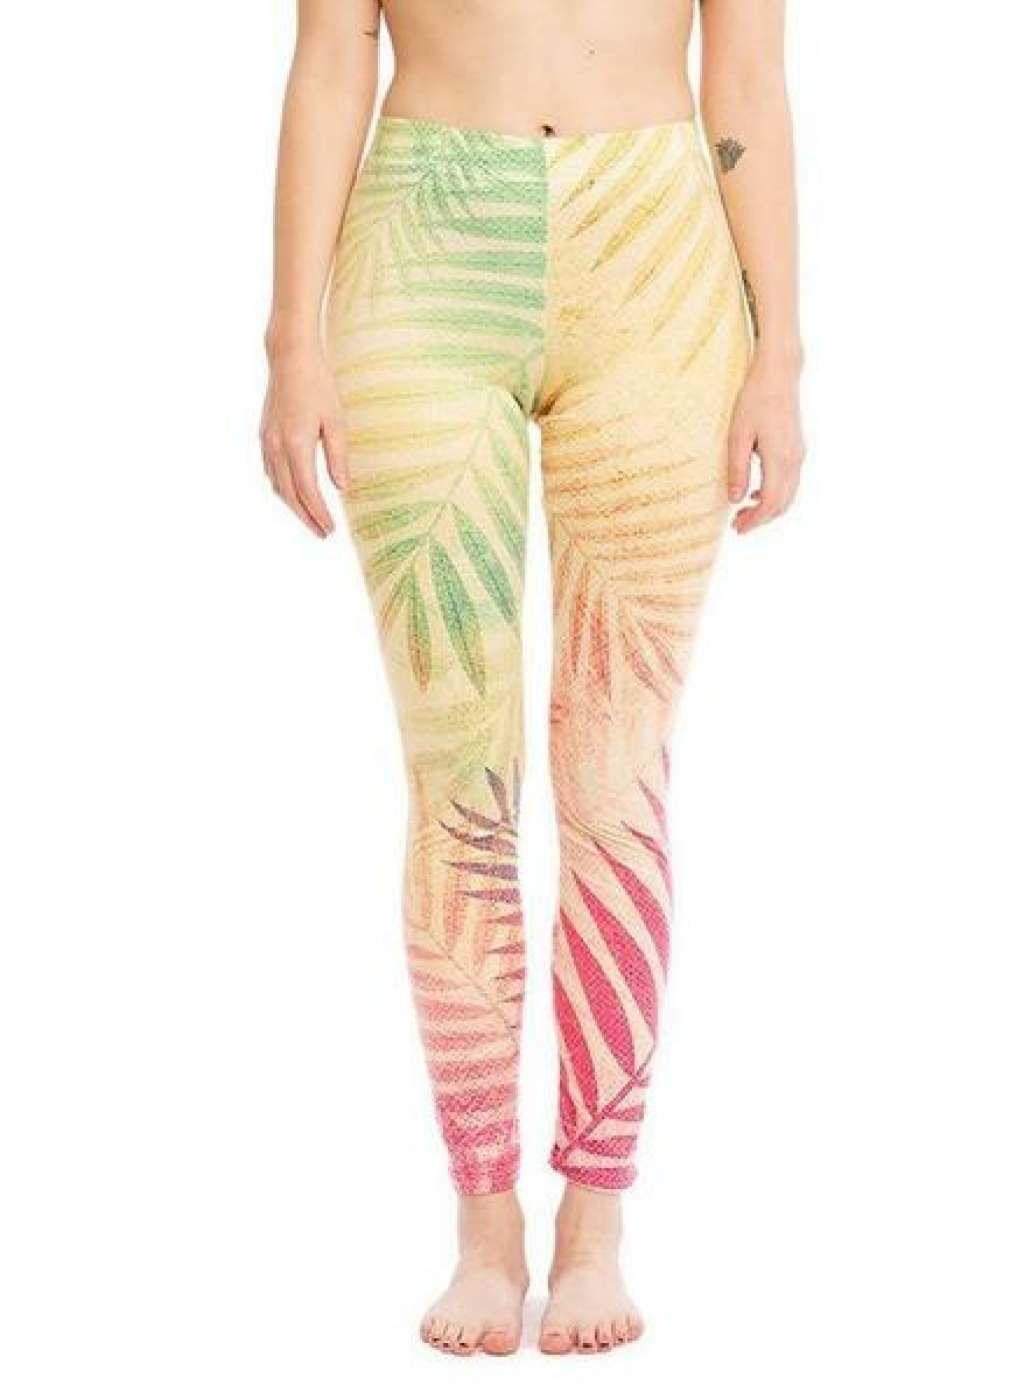 15429818740_liz-m-leggings-tropical-vibes-leggings-3809170718808_grande.jpg